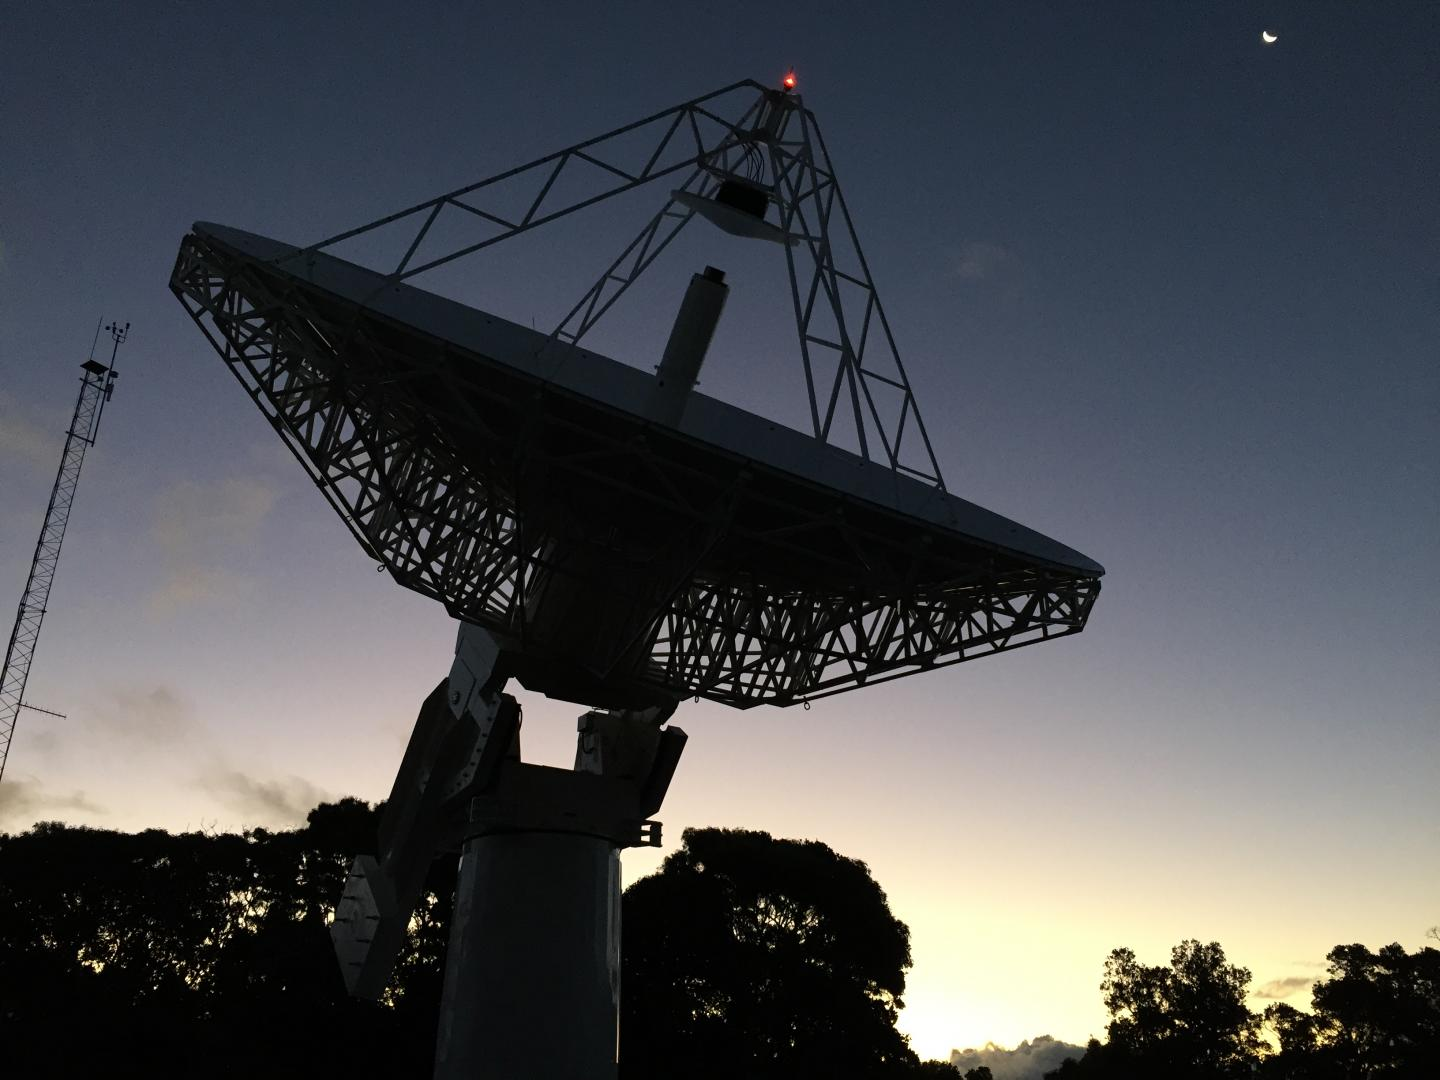 The New 12-Meter (39-Foot) Antenna at the Koke'e Park Geophysical Observatory